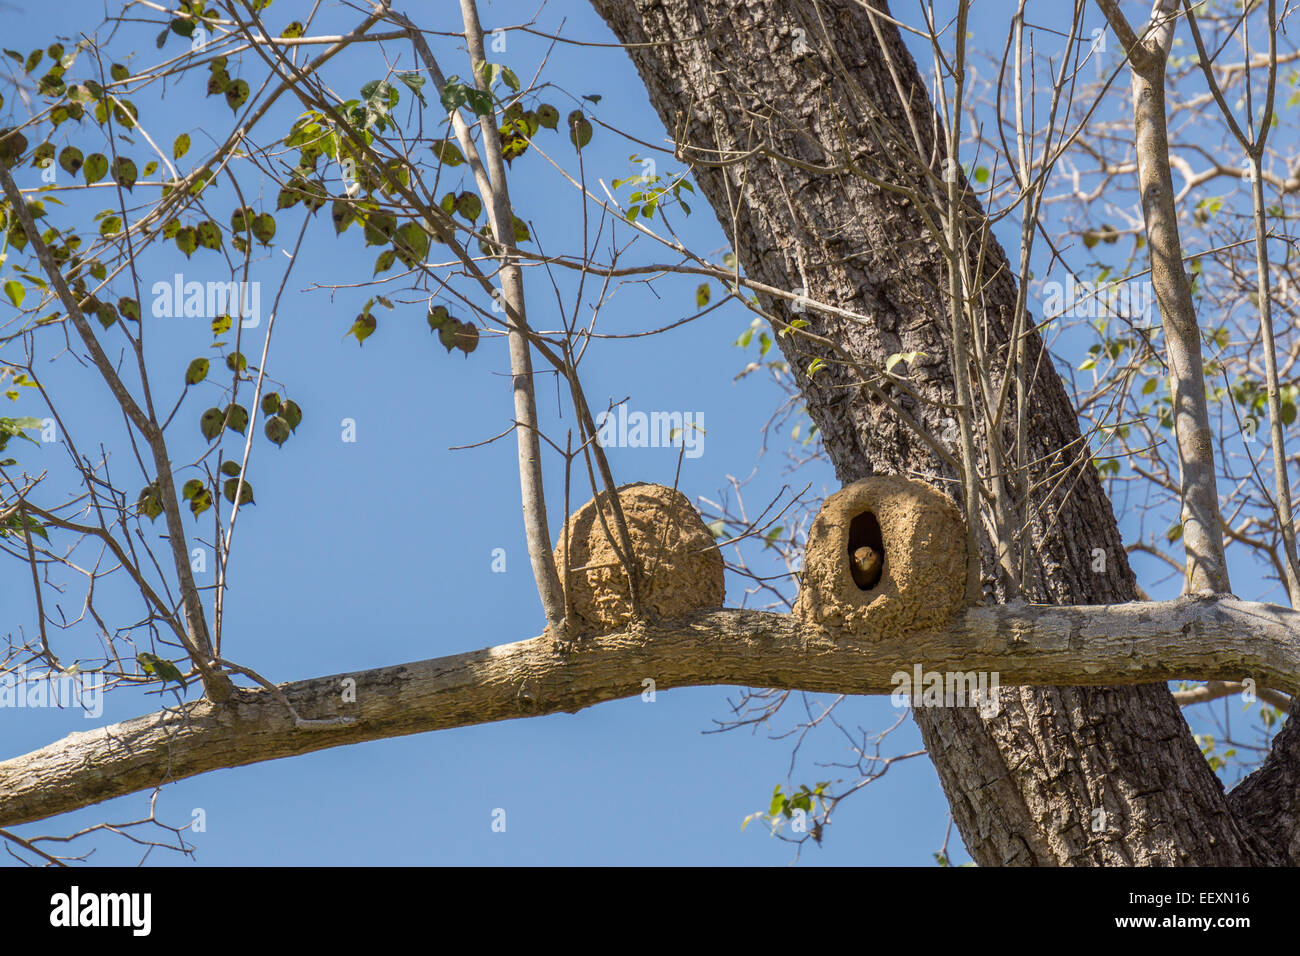 Joao de Barro bird and nest, Rufous hornero - Stock Image